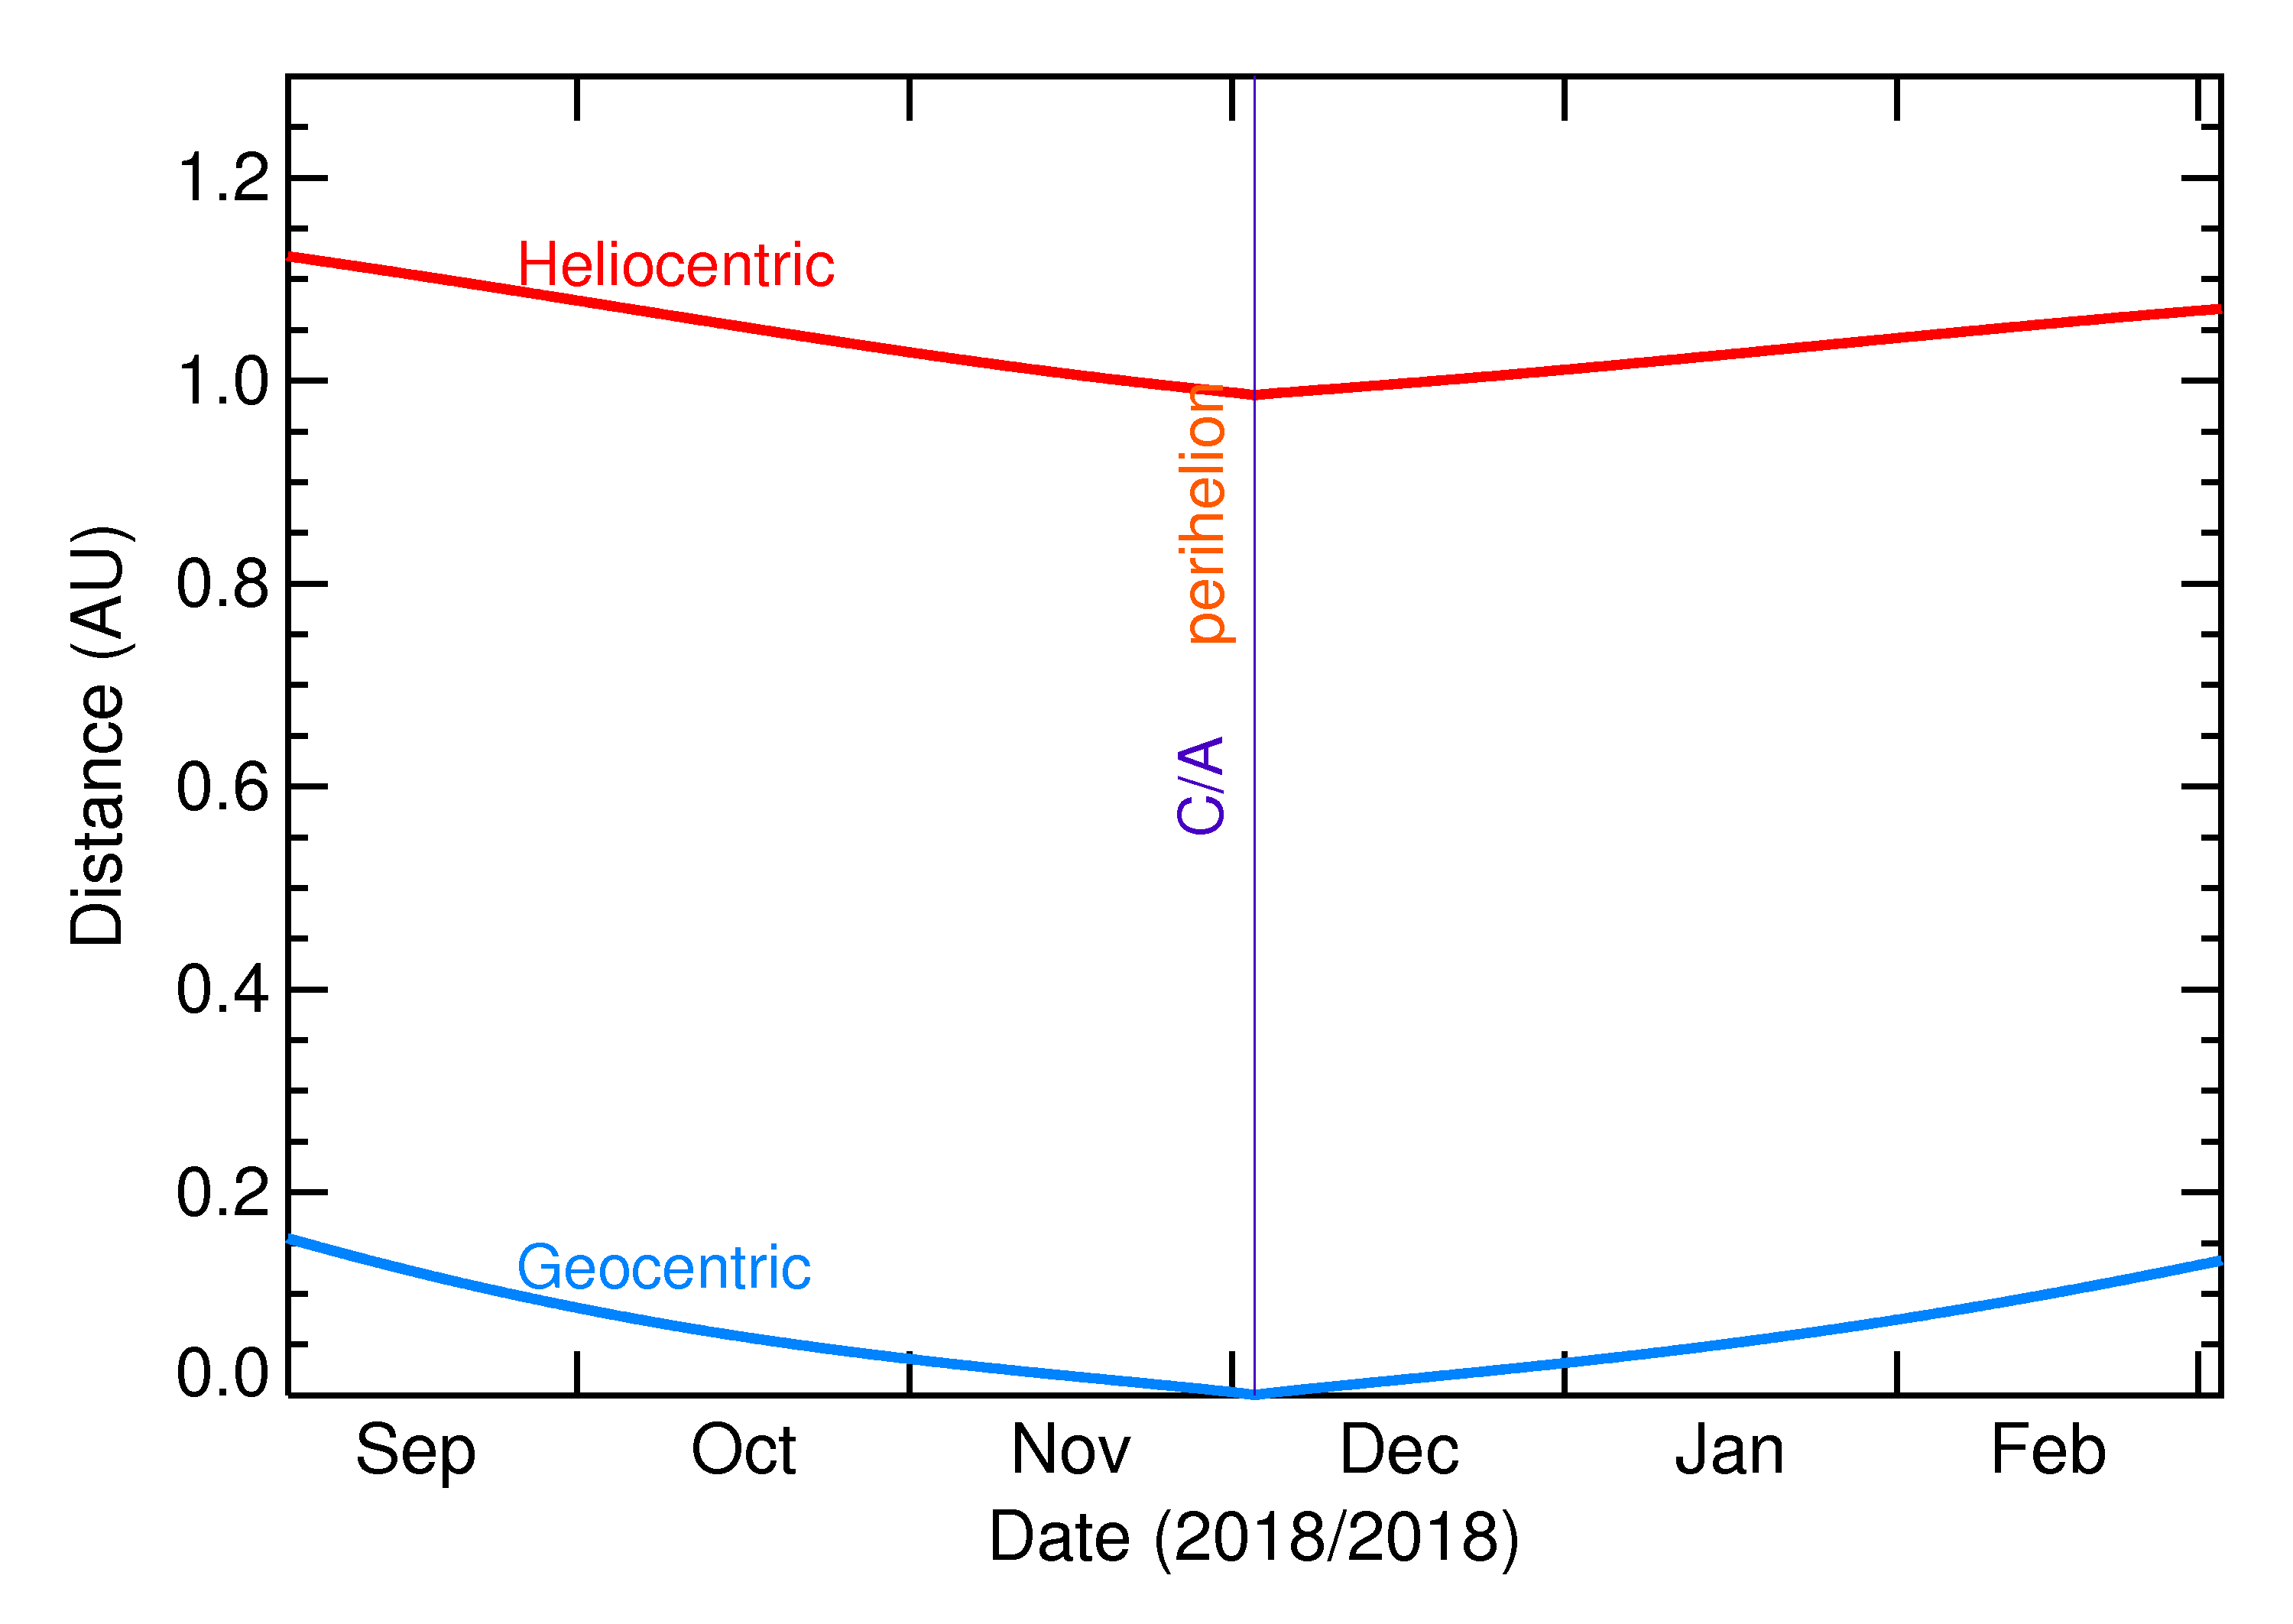 Heliocentric and Geocentric Distances of 2018 WV1 in the months around closest approach